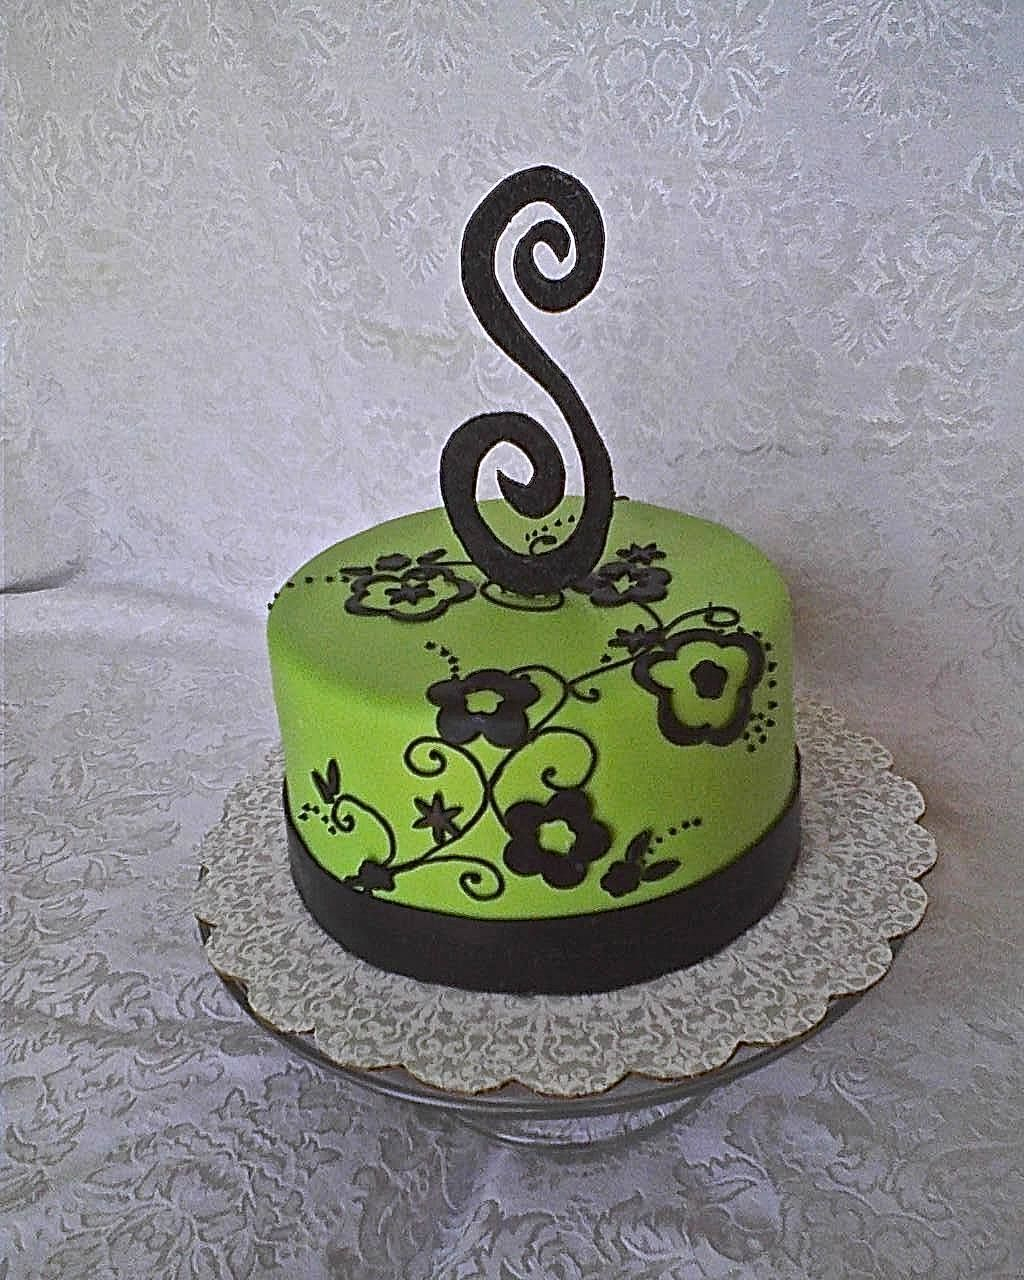 Lime Green And Black Birthday Cake Green Cake 40th Cake Cake